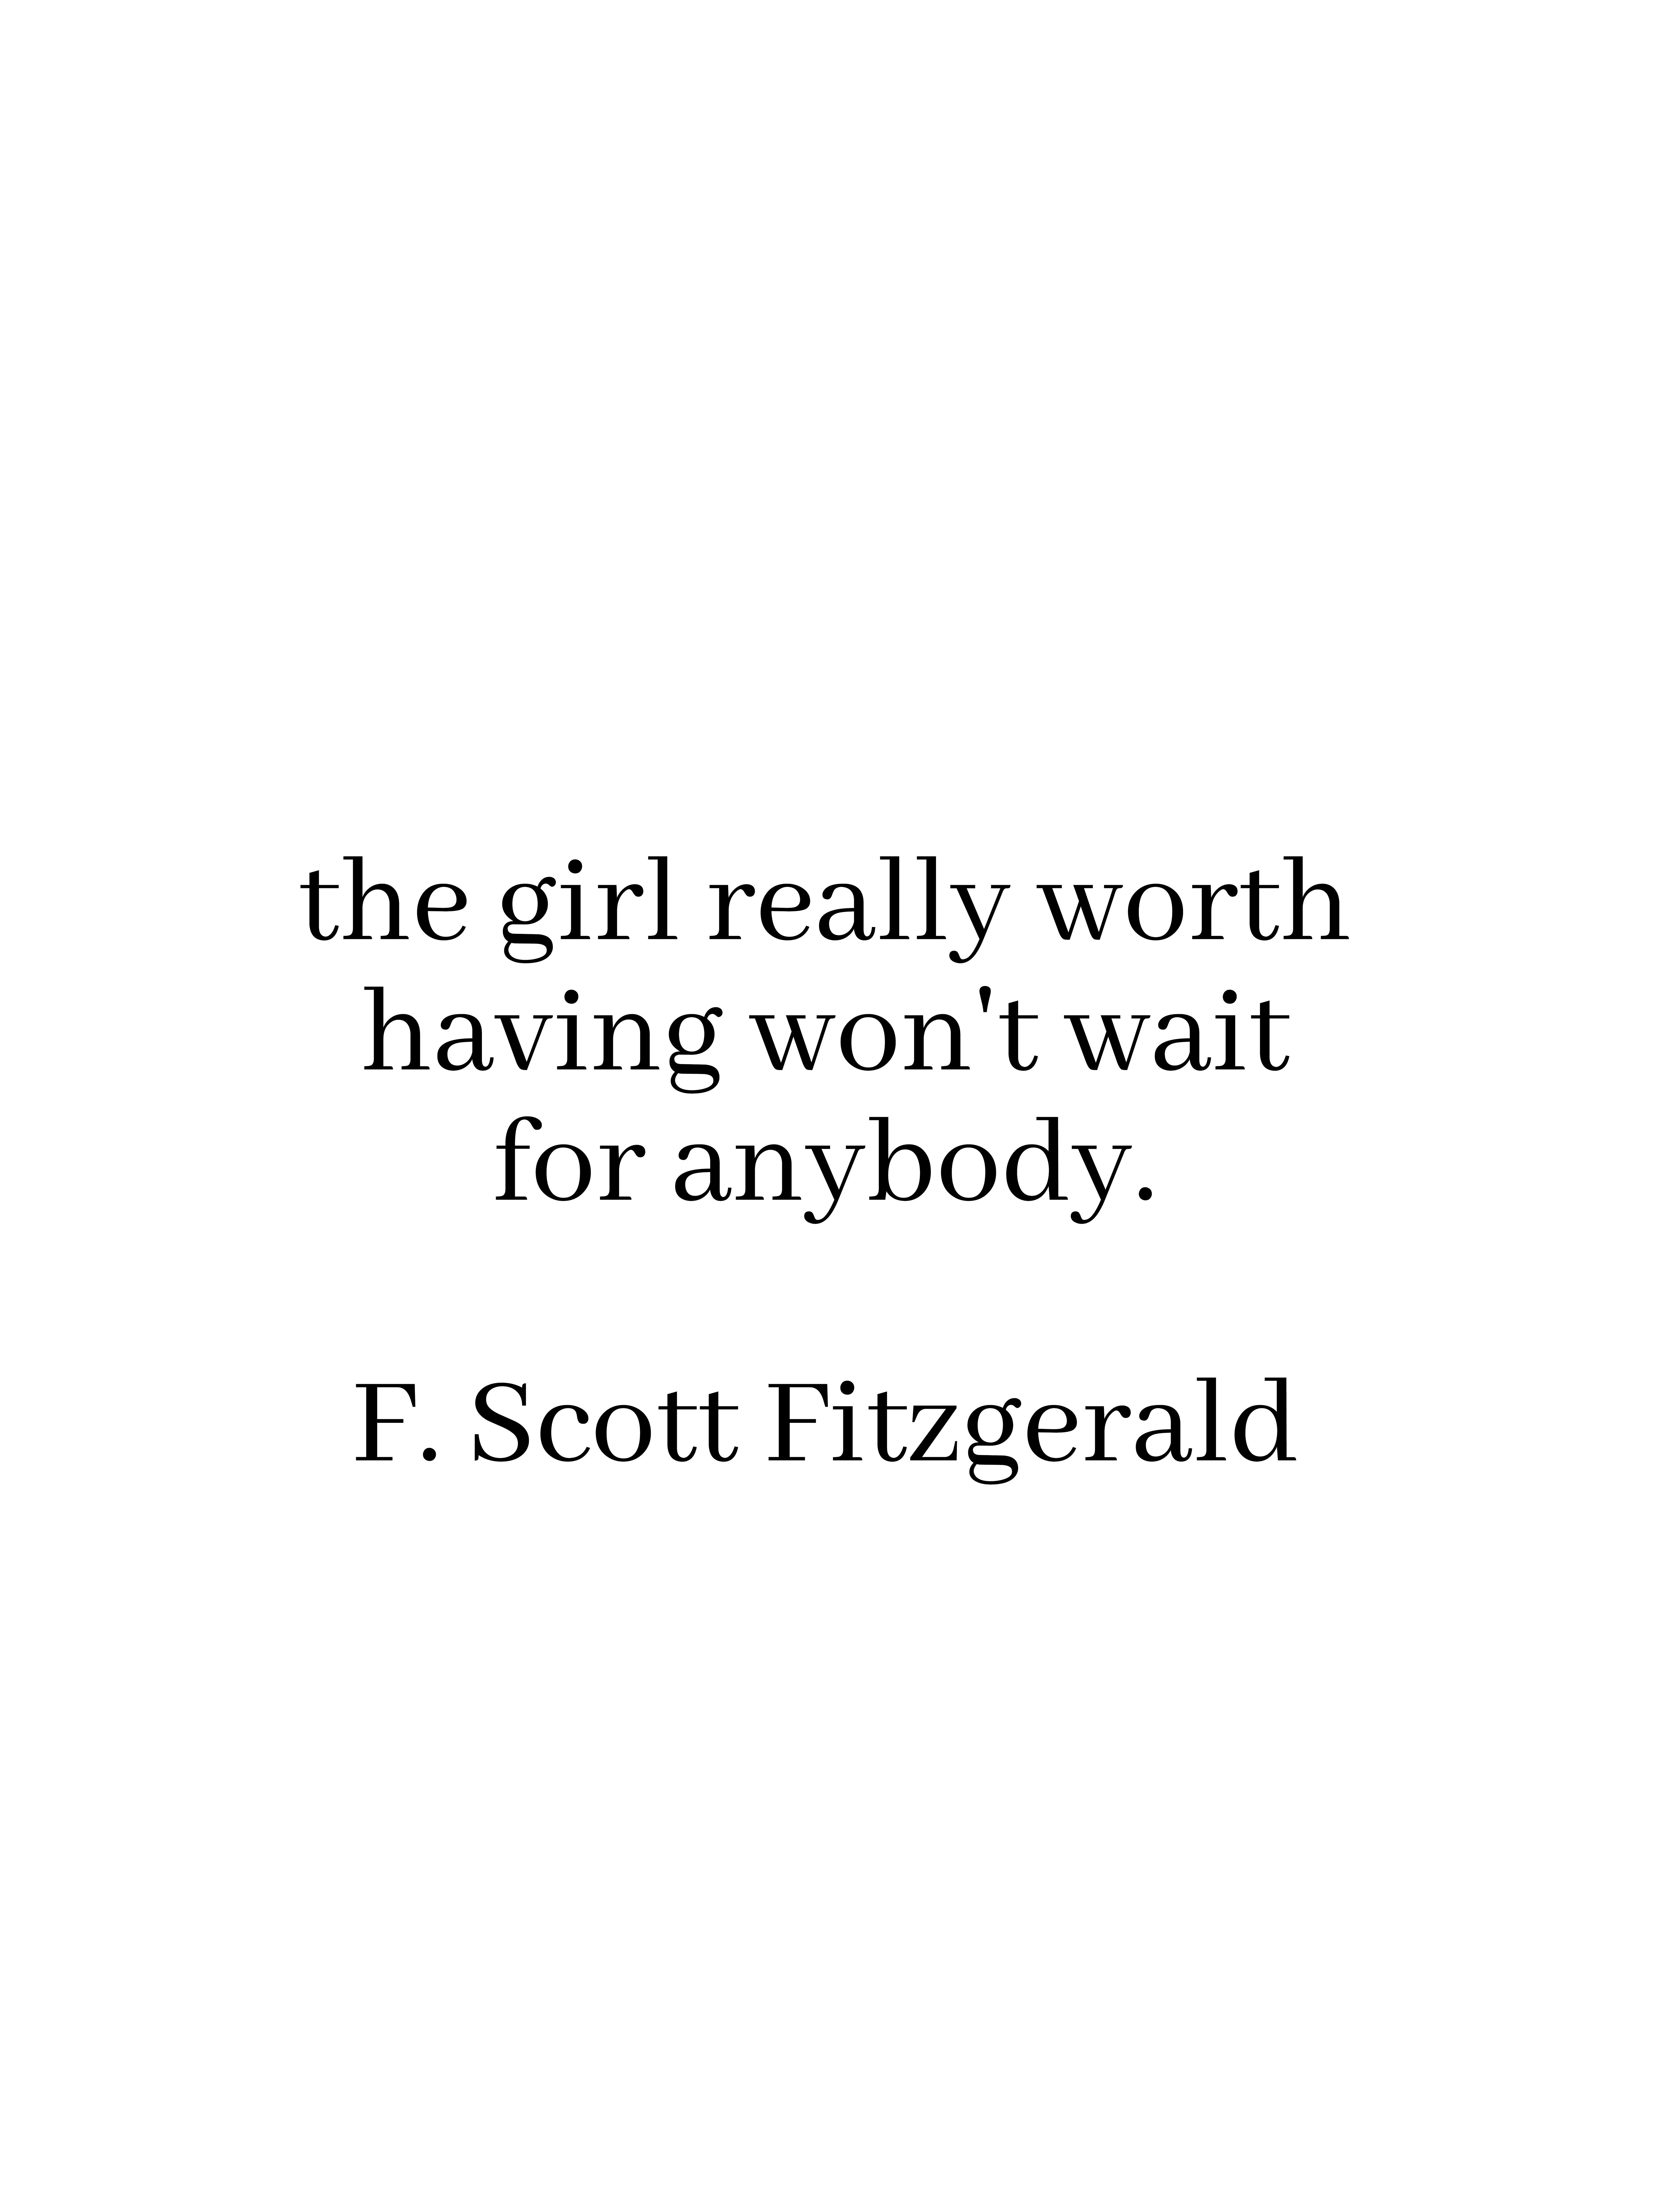 Women Empowering Quotes Tumblr Words Quotes Words Of Wisdom Inspirational Quotes